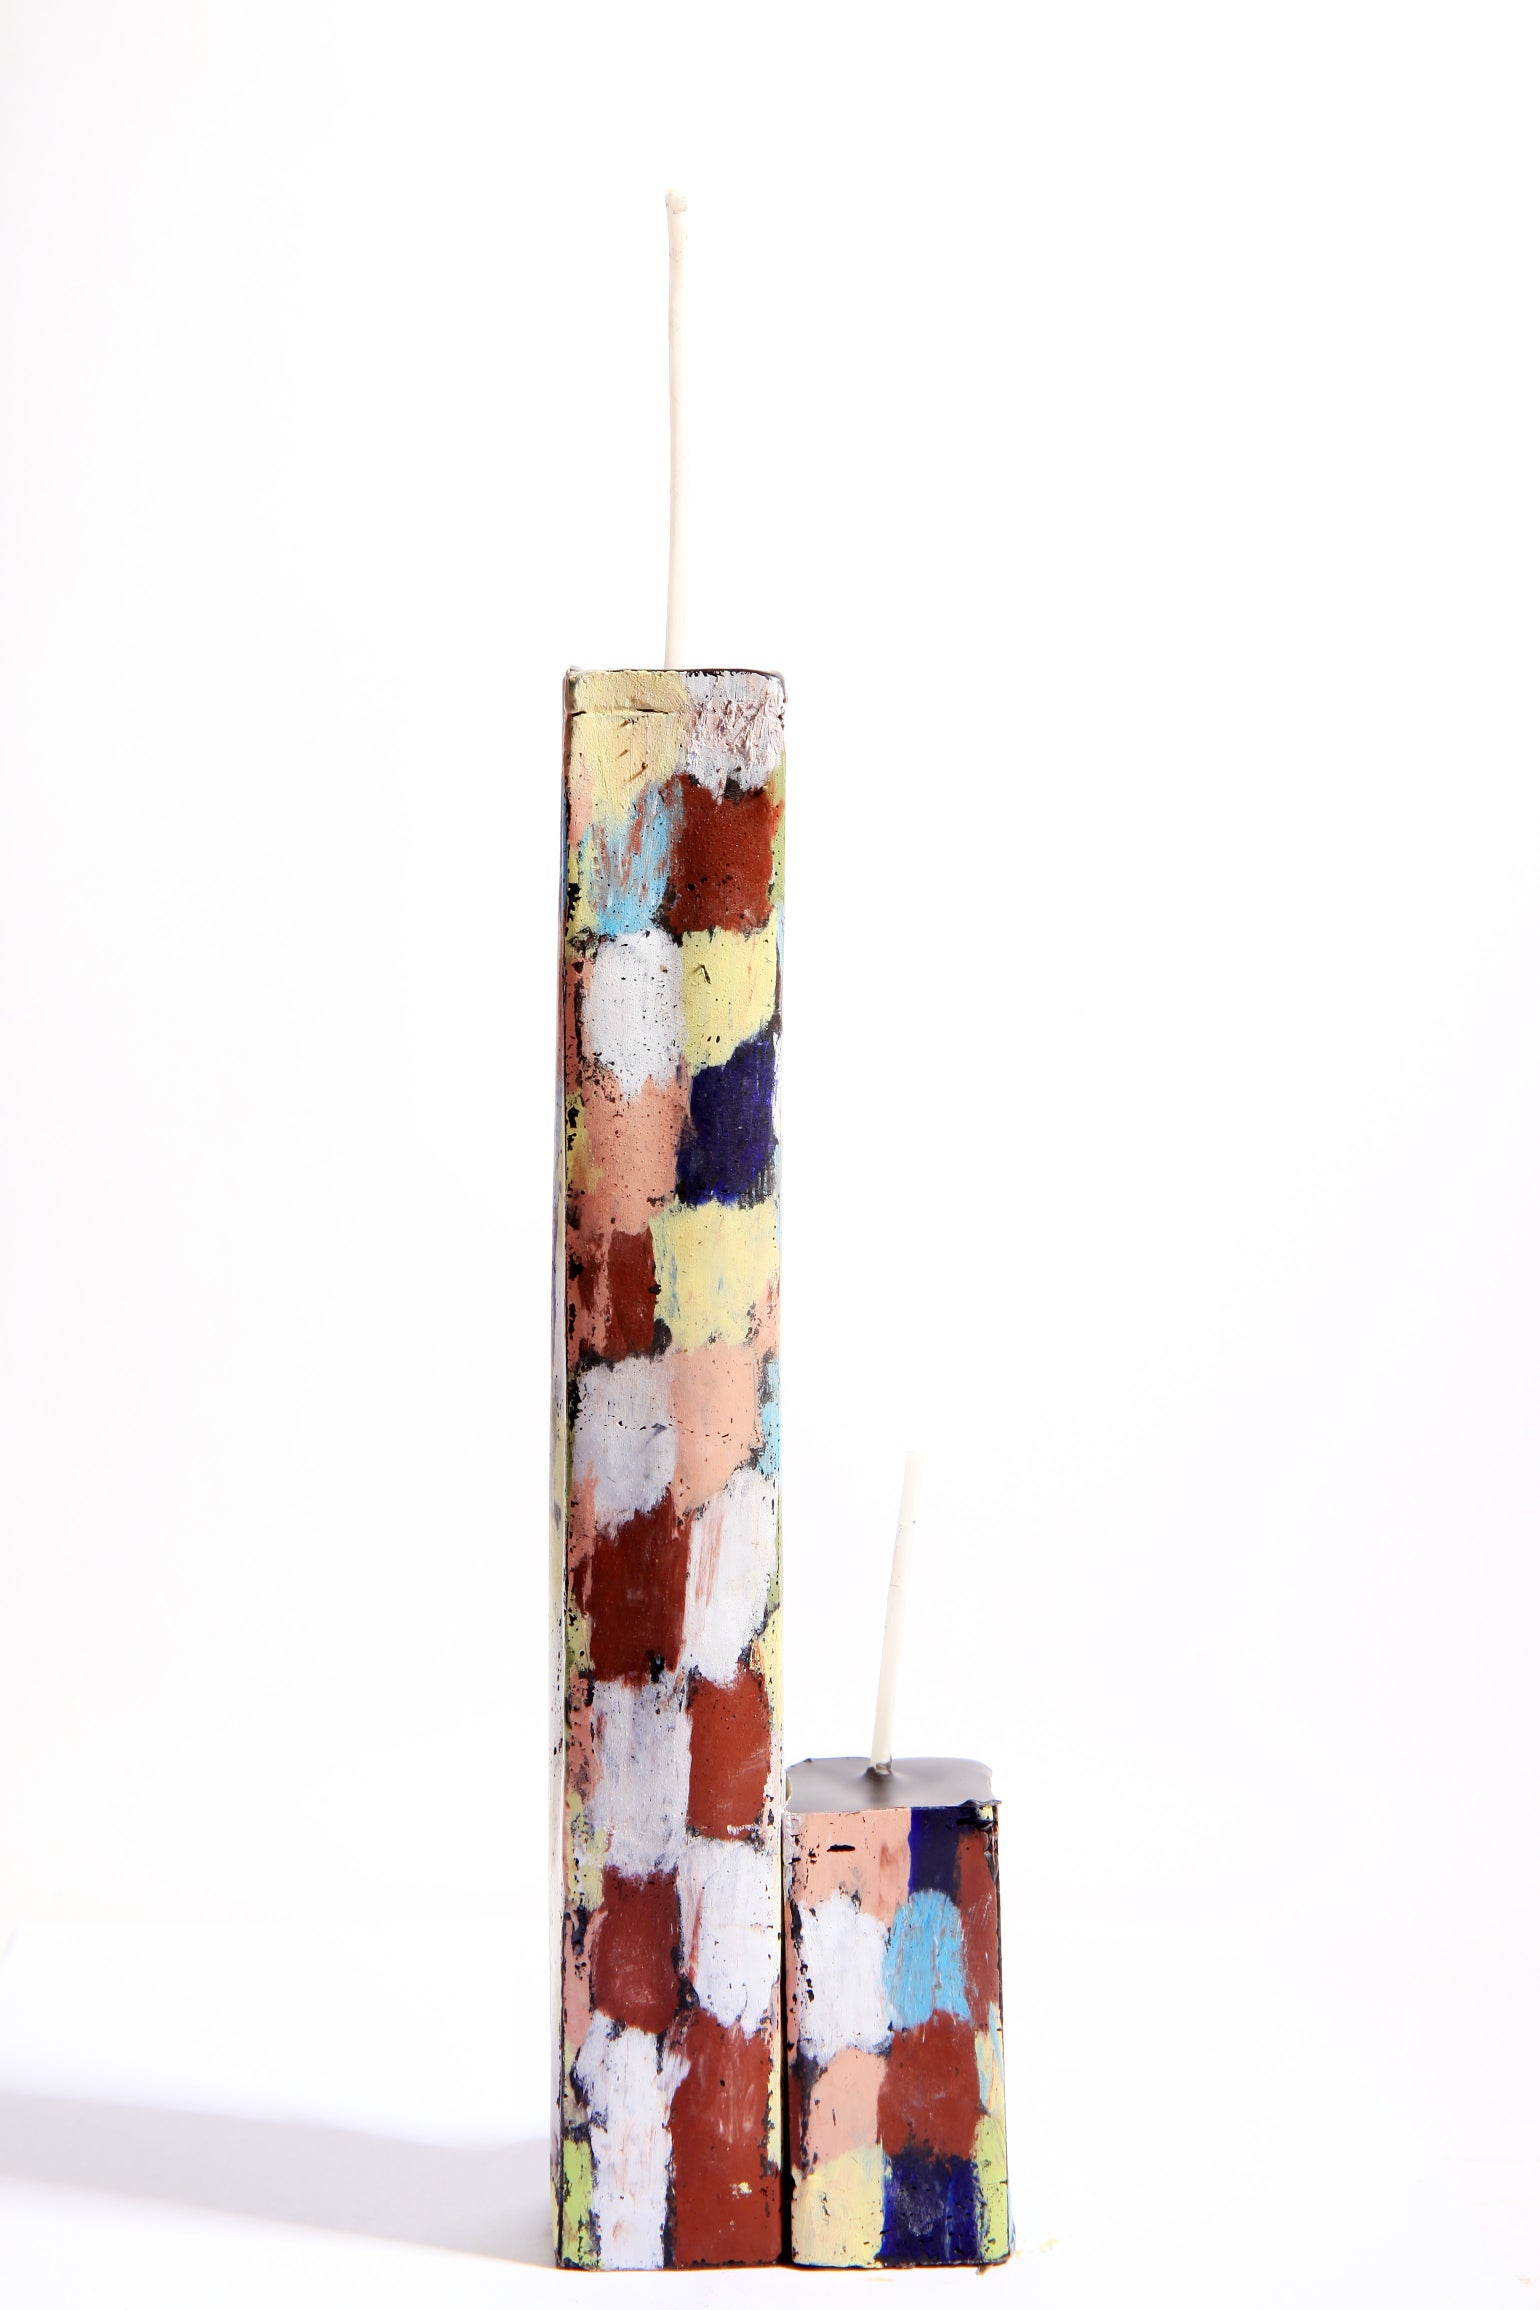 Image of Tall Stack Tower Mother & Child in soft yellow, olive, navy, baby blue, pink, brown madder & white